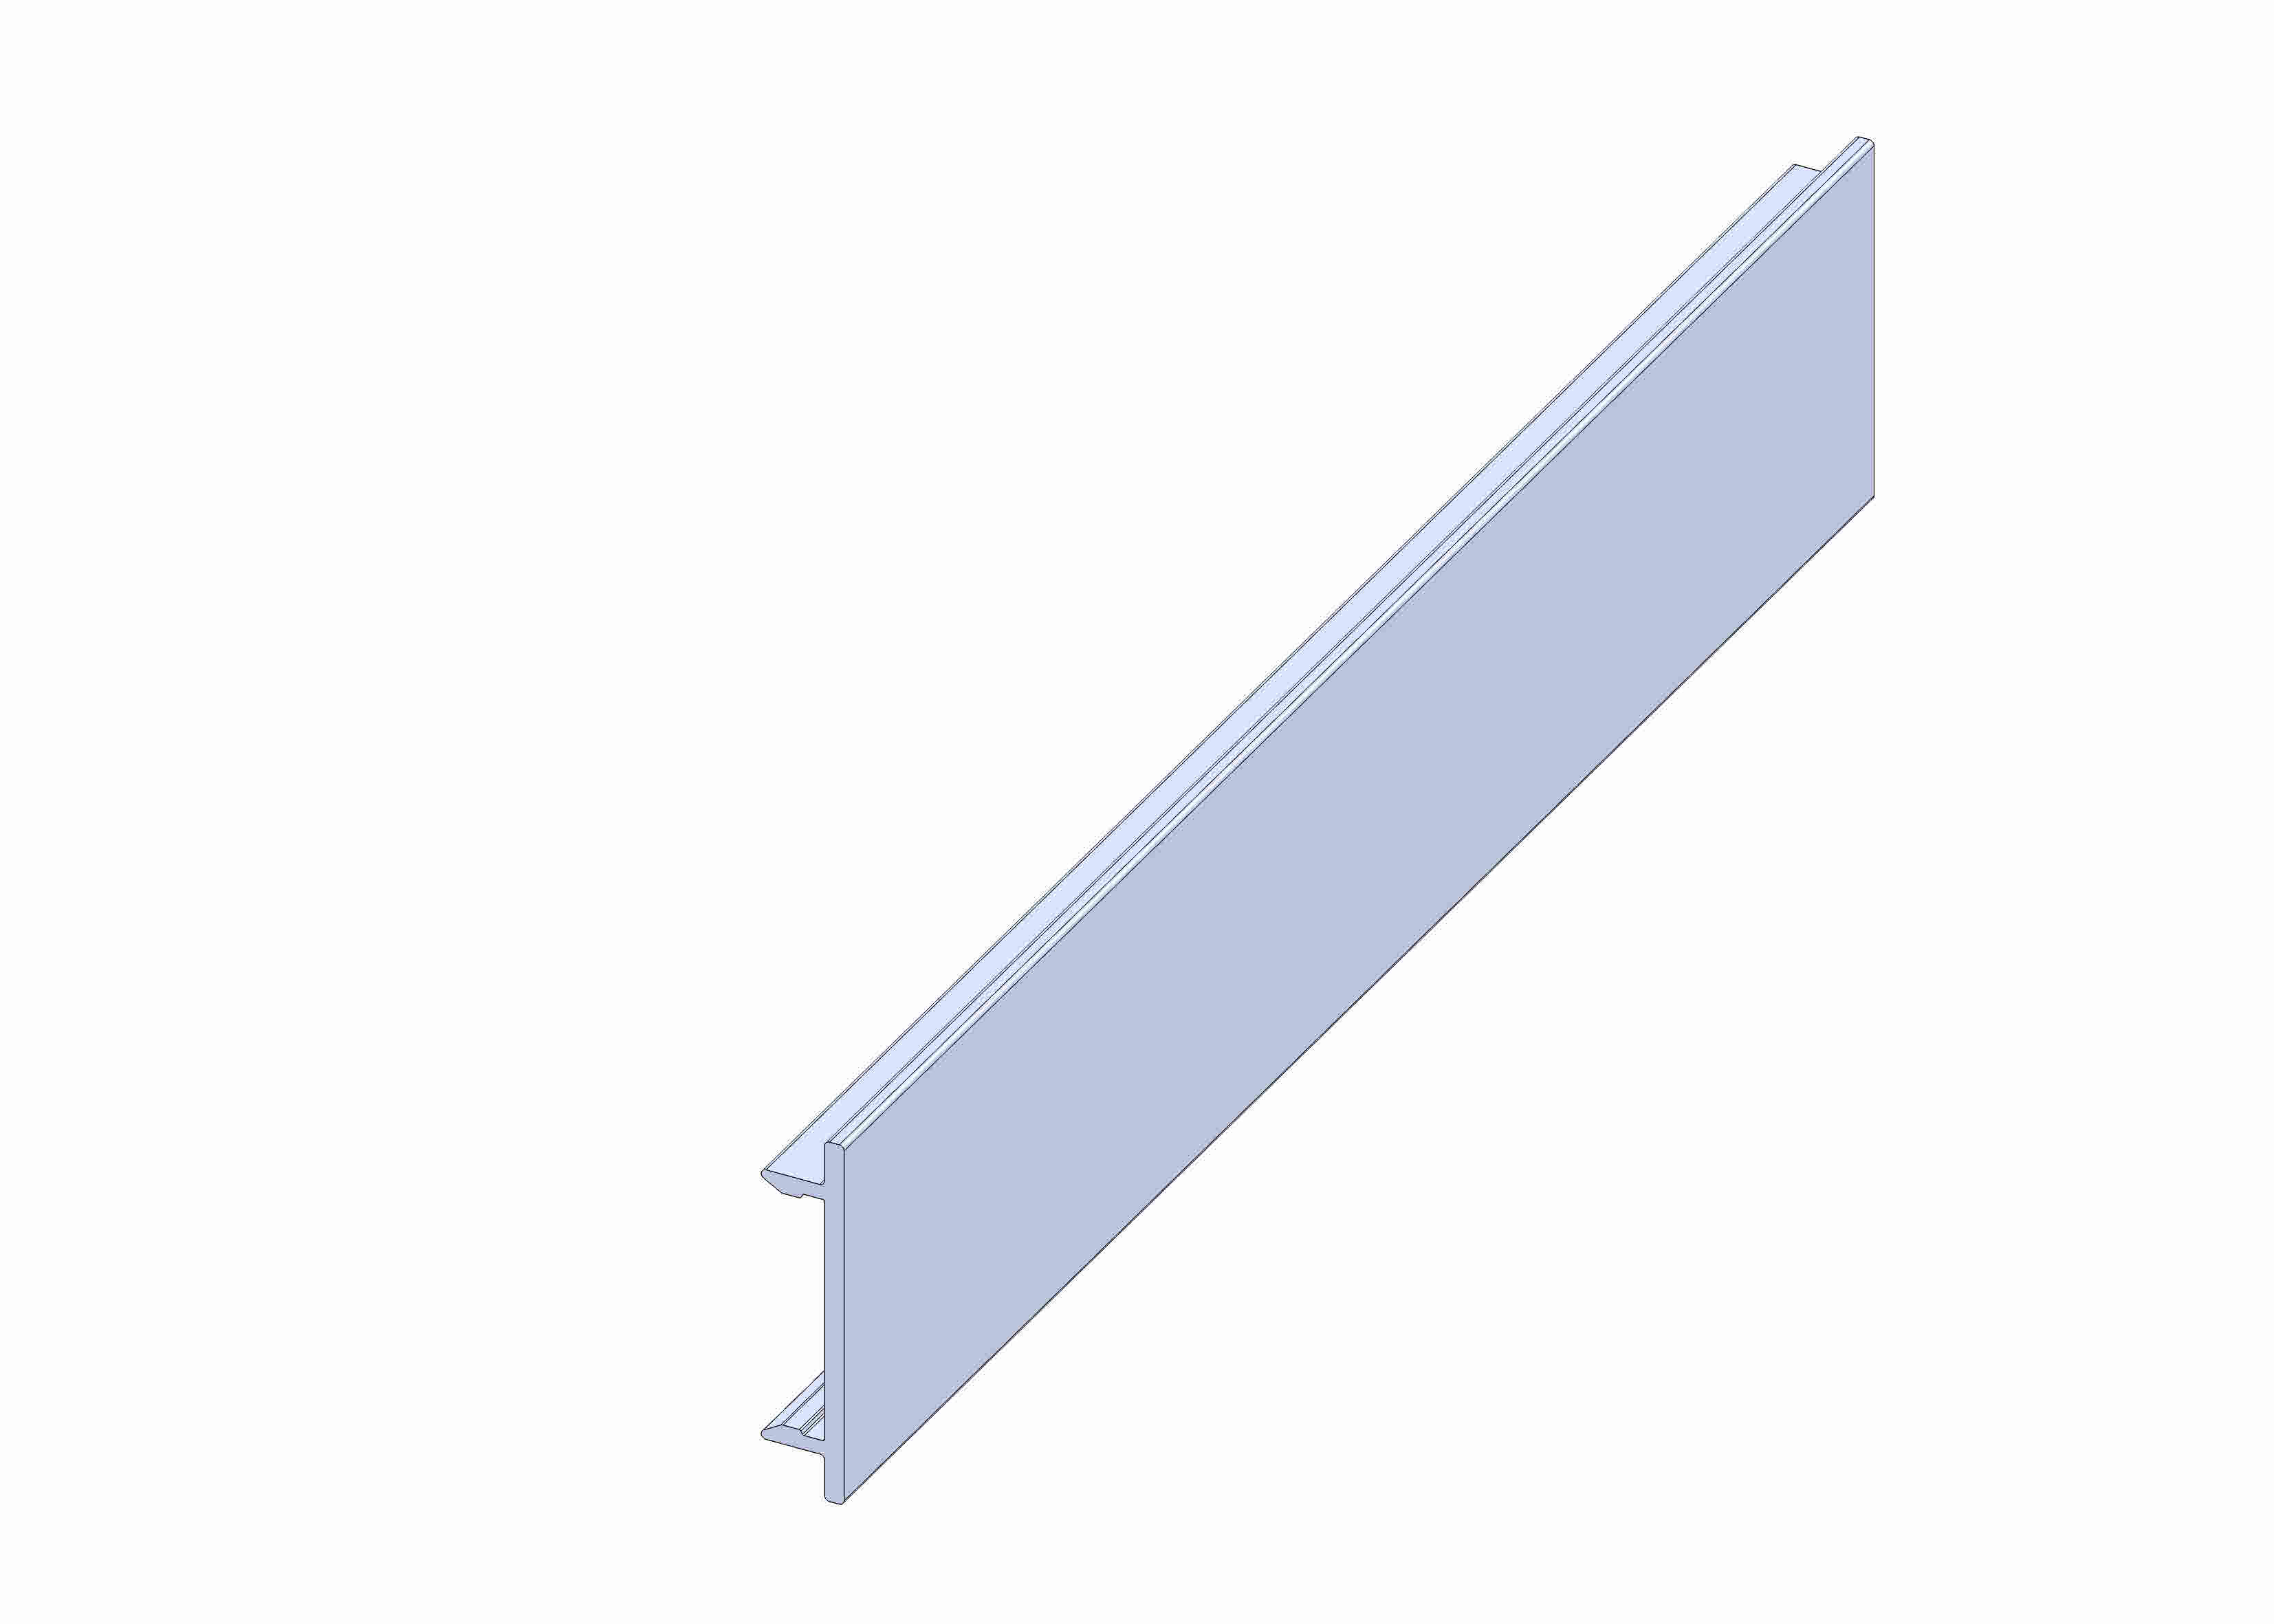 Protective strip for guide profile P25 x 11 - 55/85/195